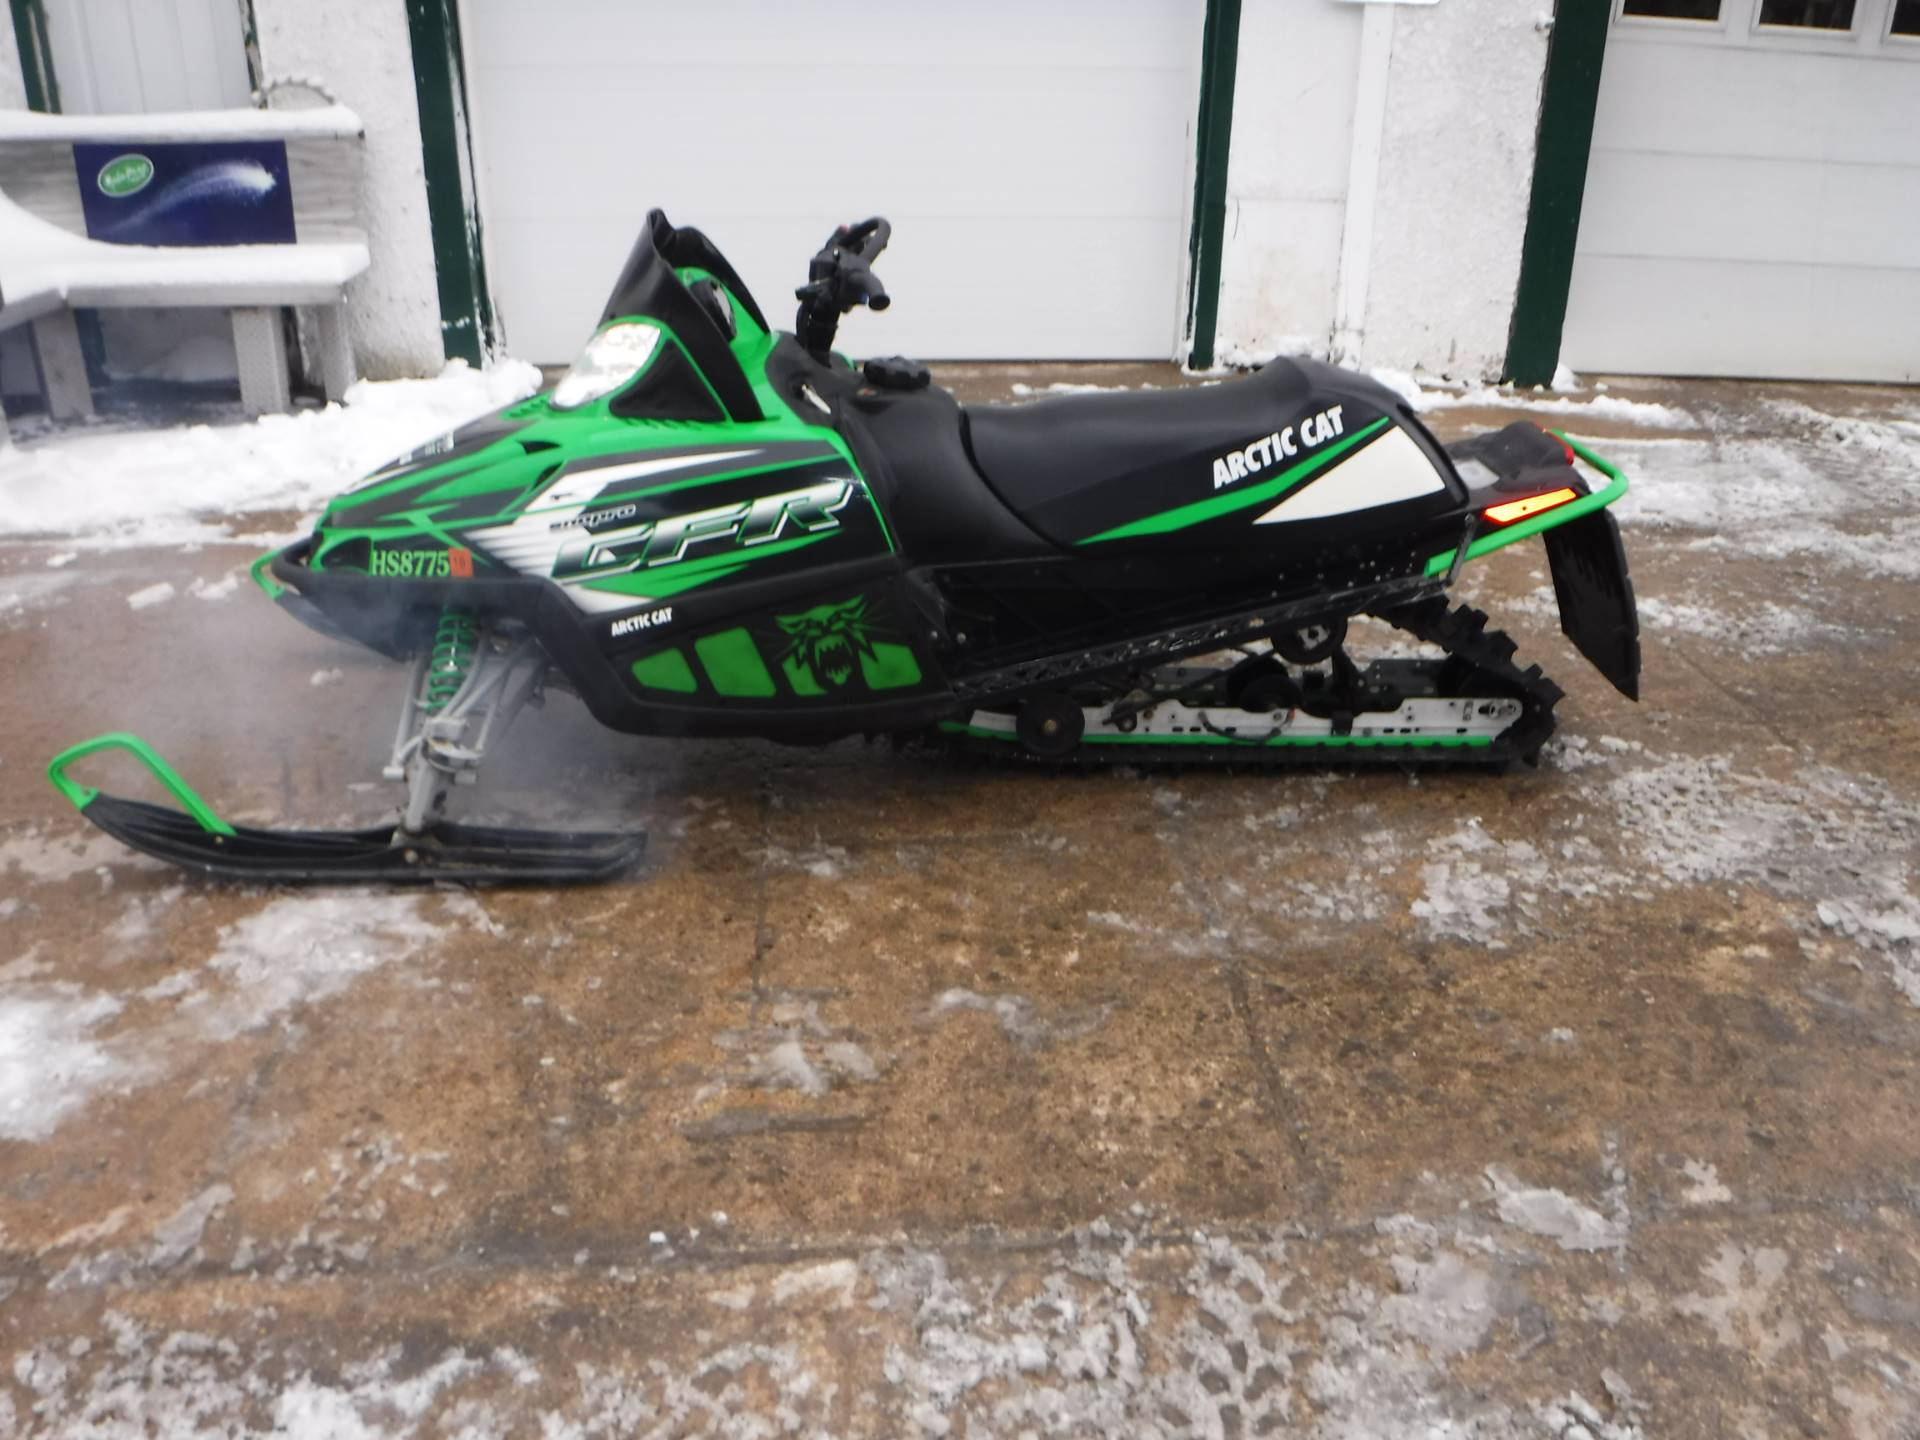 2010 Arctic Cat CFR 8 H.O. in Mazeppa, Minnesota - Photo 2